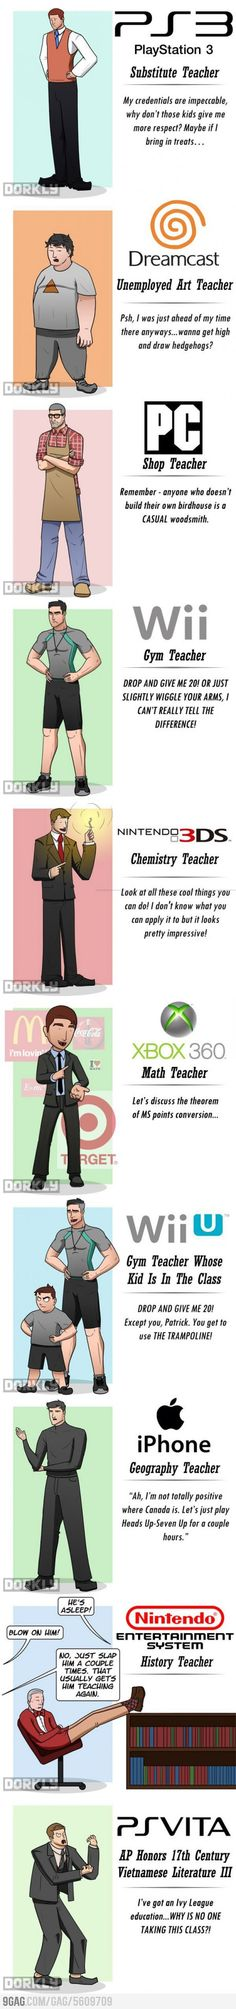 If videogame consoles were your teachers